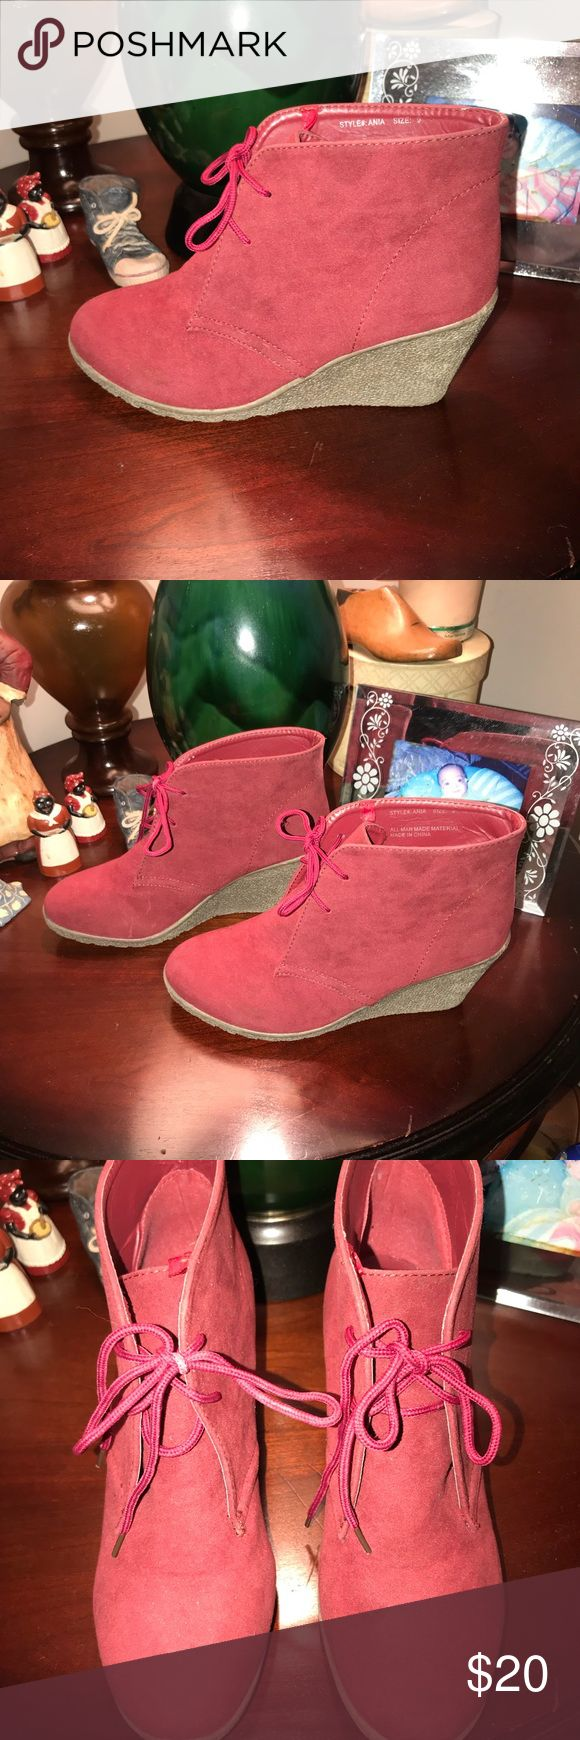 WET SEAL HALF BOOTIES WET SEAL RED FAUX SUEDE HALF BOOTIES EXCELLENT CONDITION SIZE 9M Wet Seal Shoes Ankle Boots & Booties